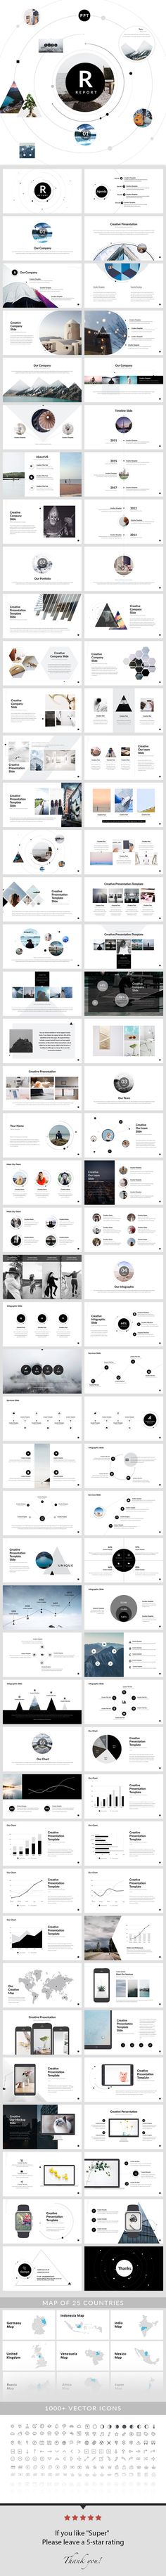 Report - PowerPoint #Presentation Template - Creative #PowerPoint #Templates Download here: https://graphicriver.net/item/report-powerpoint-presentation-template/19510099?ref=alena994